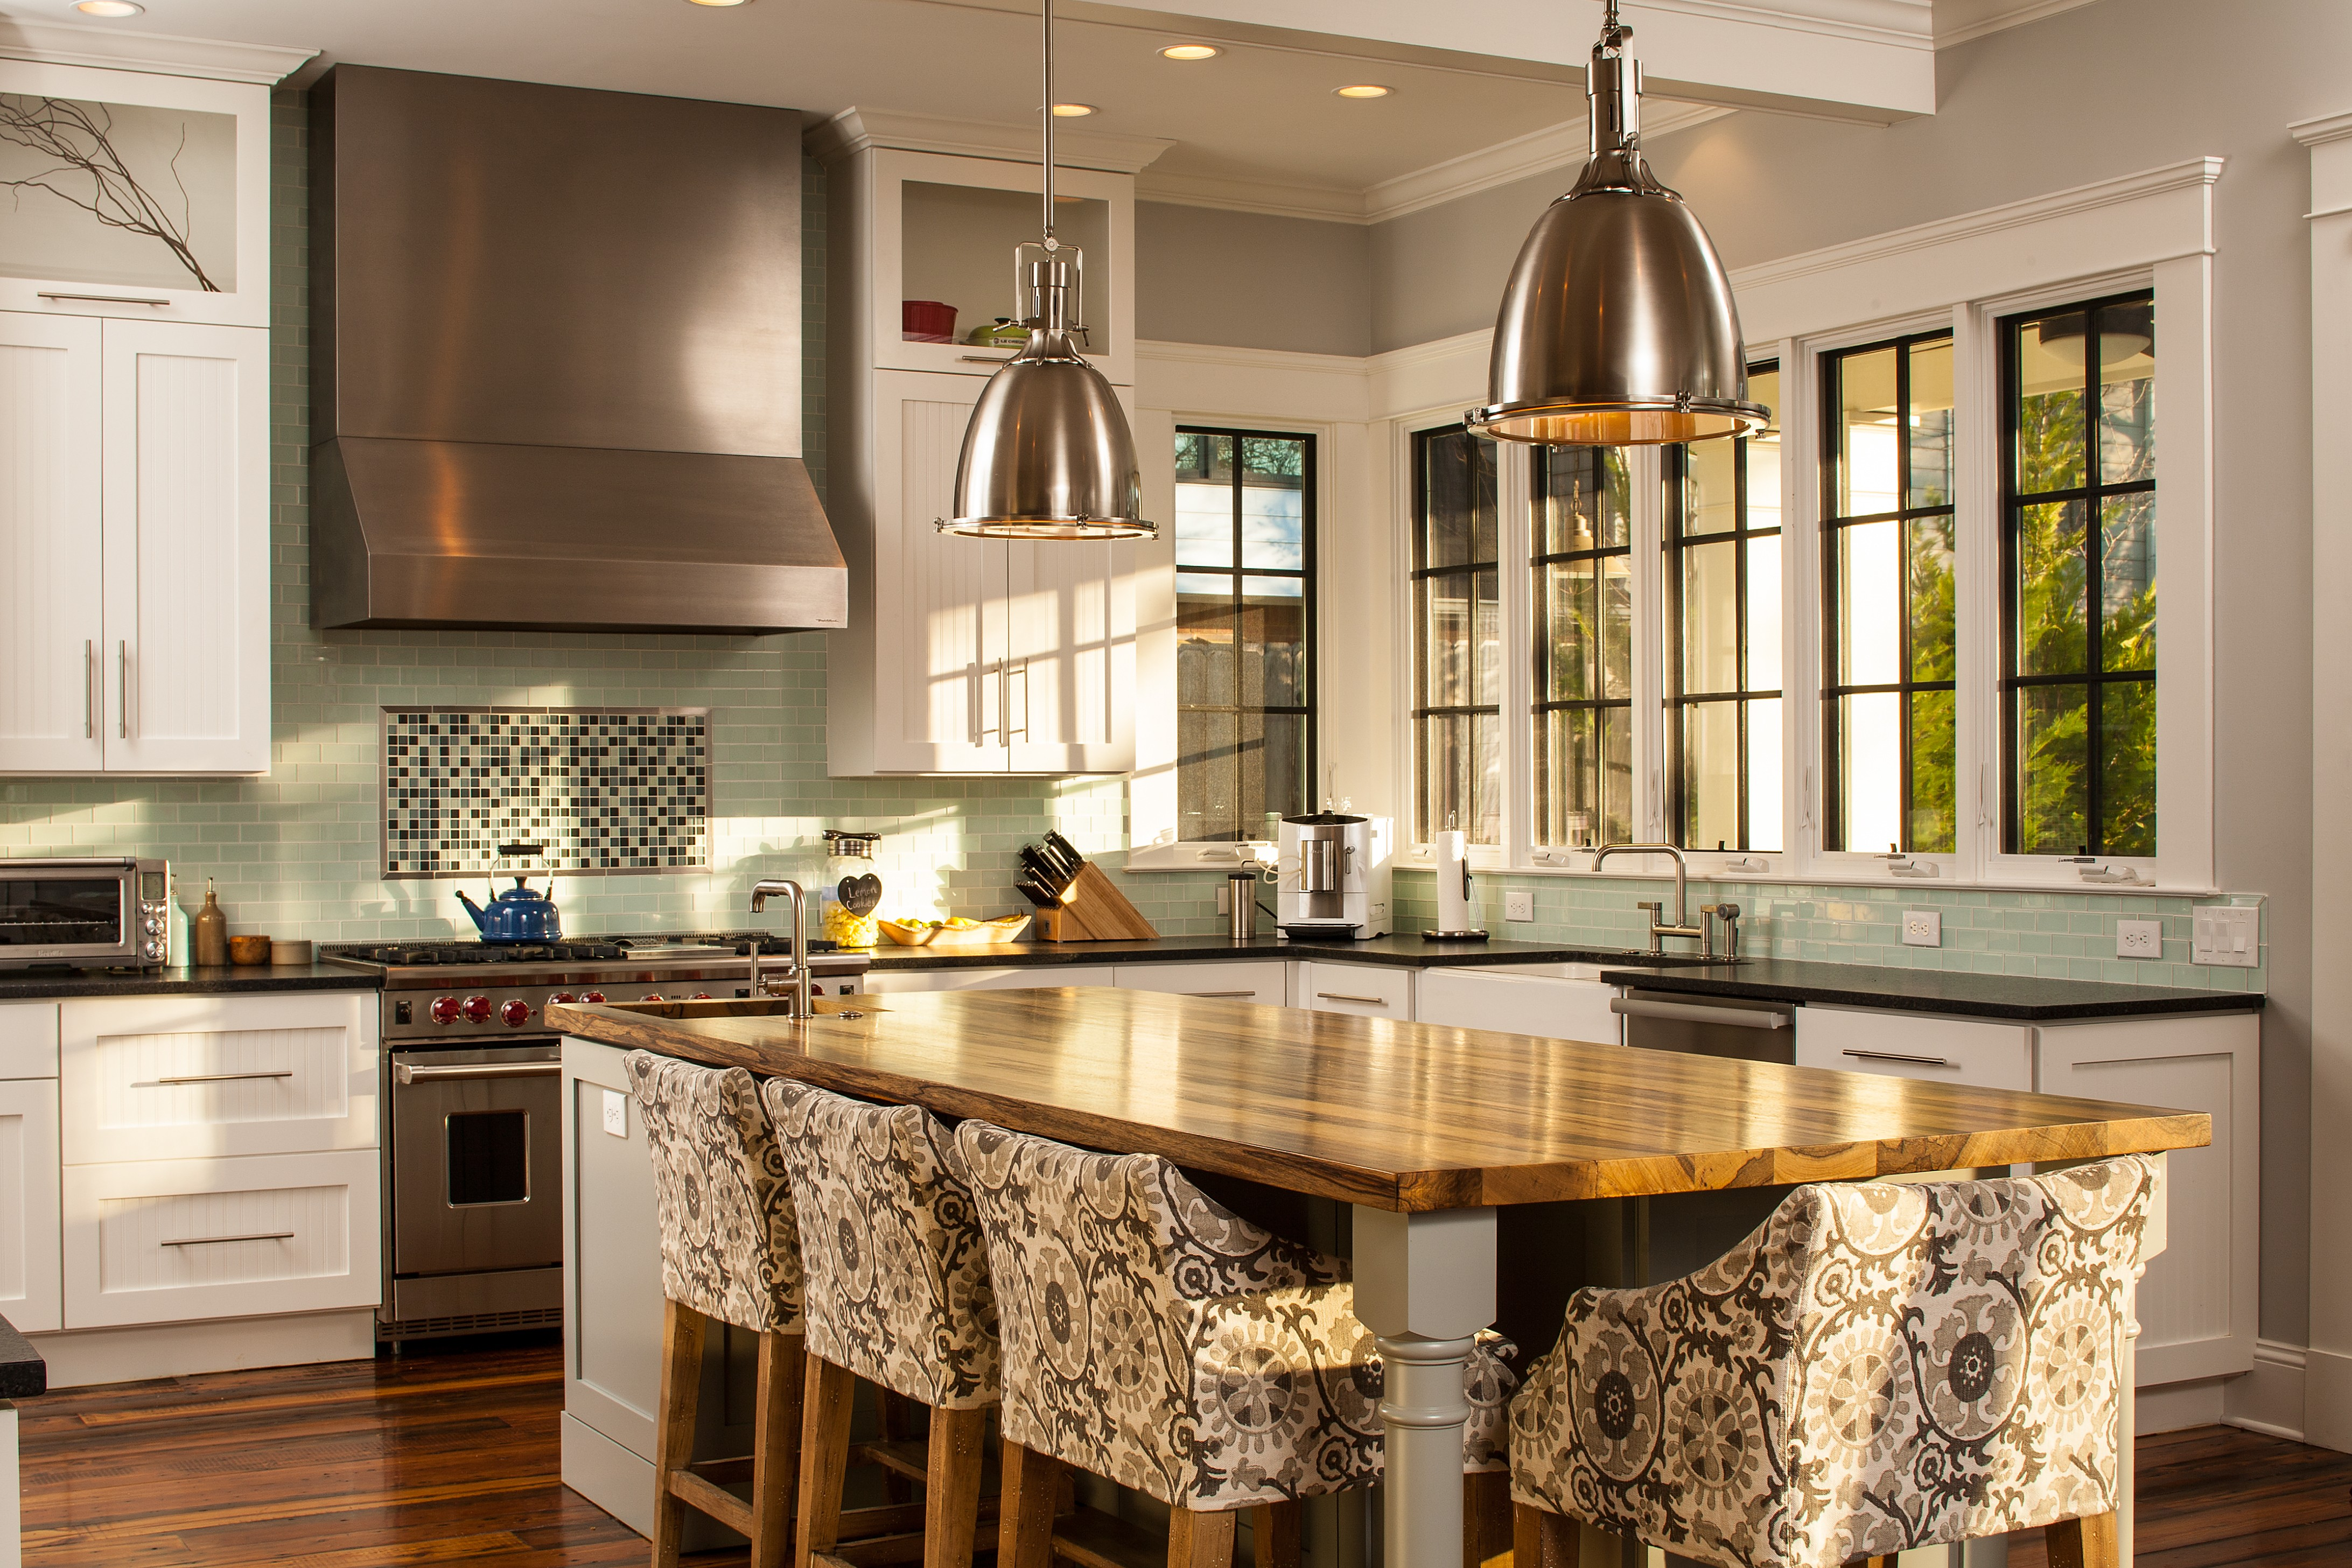 11 Gorgeous Kitchens For People Who Love To Cook